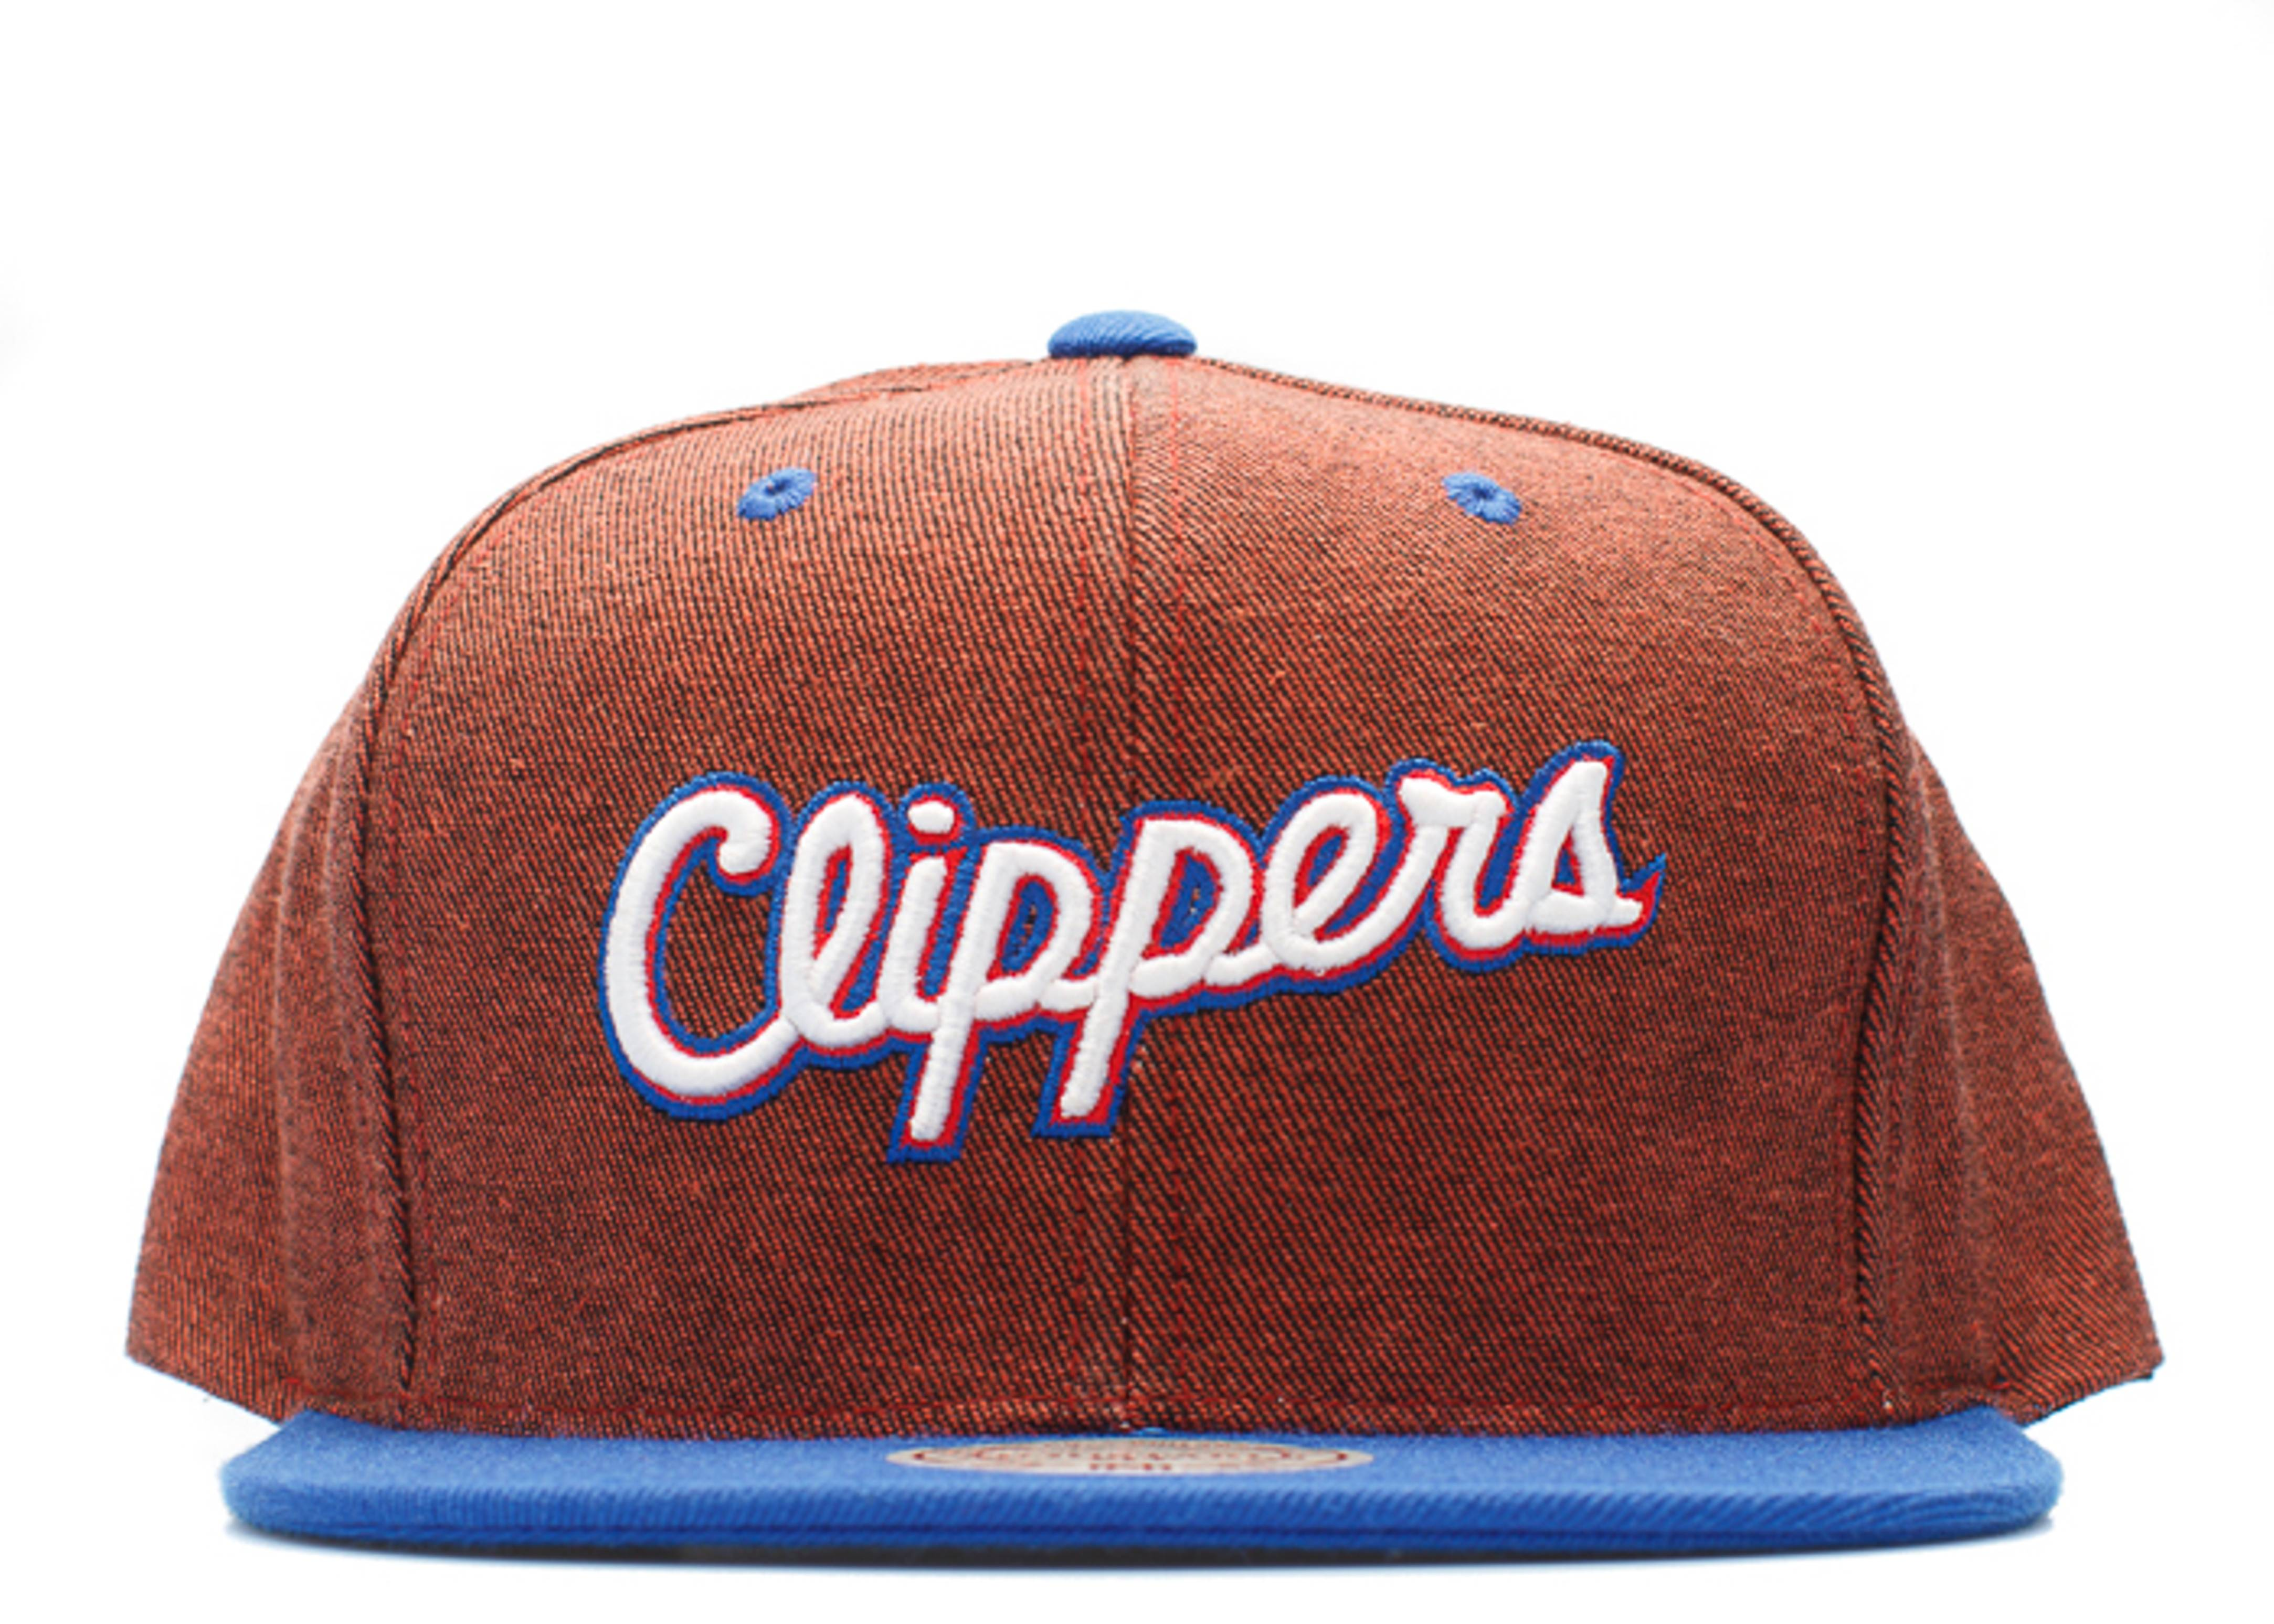 los angeles clippers denim snap-back